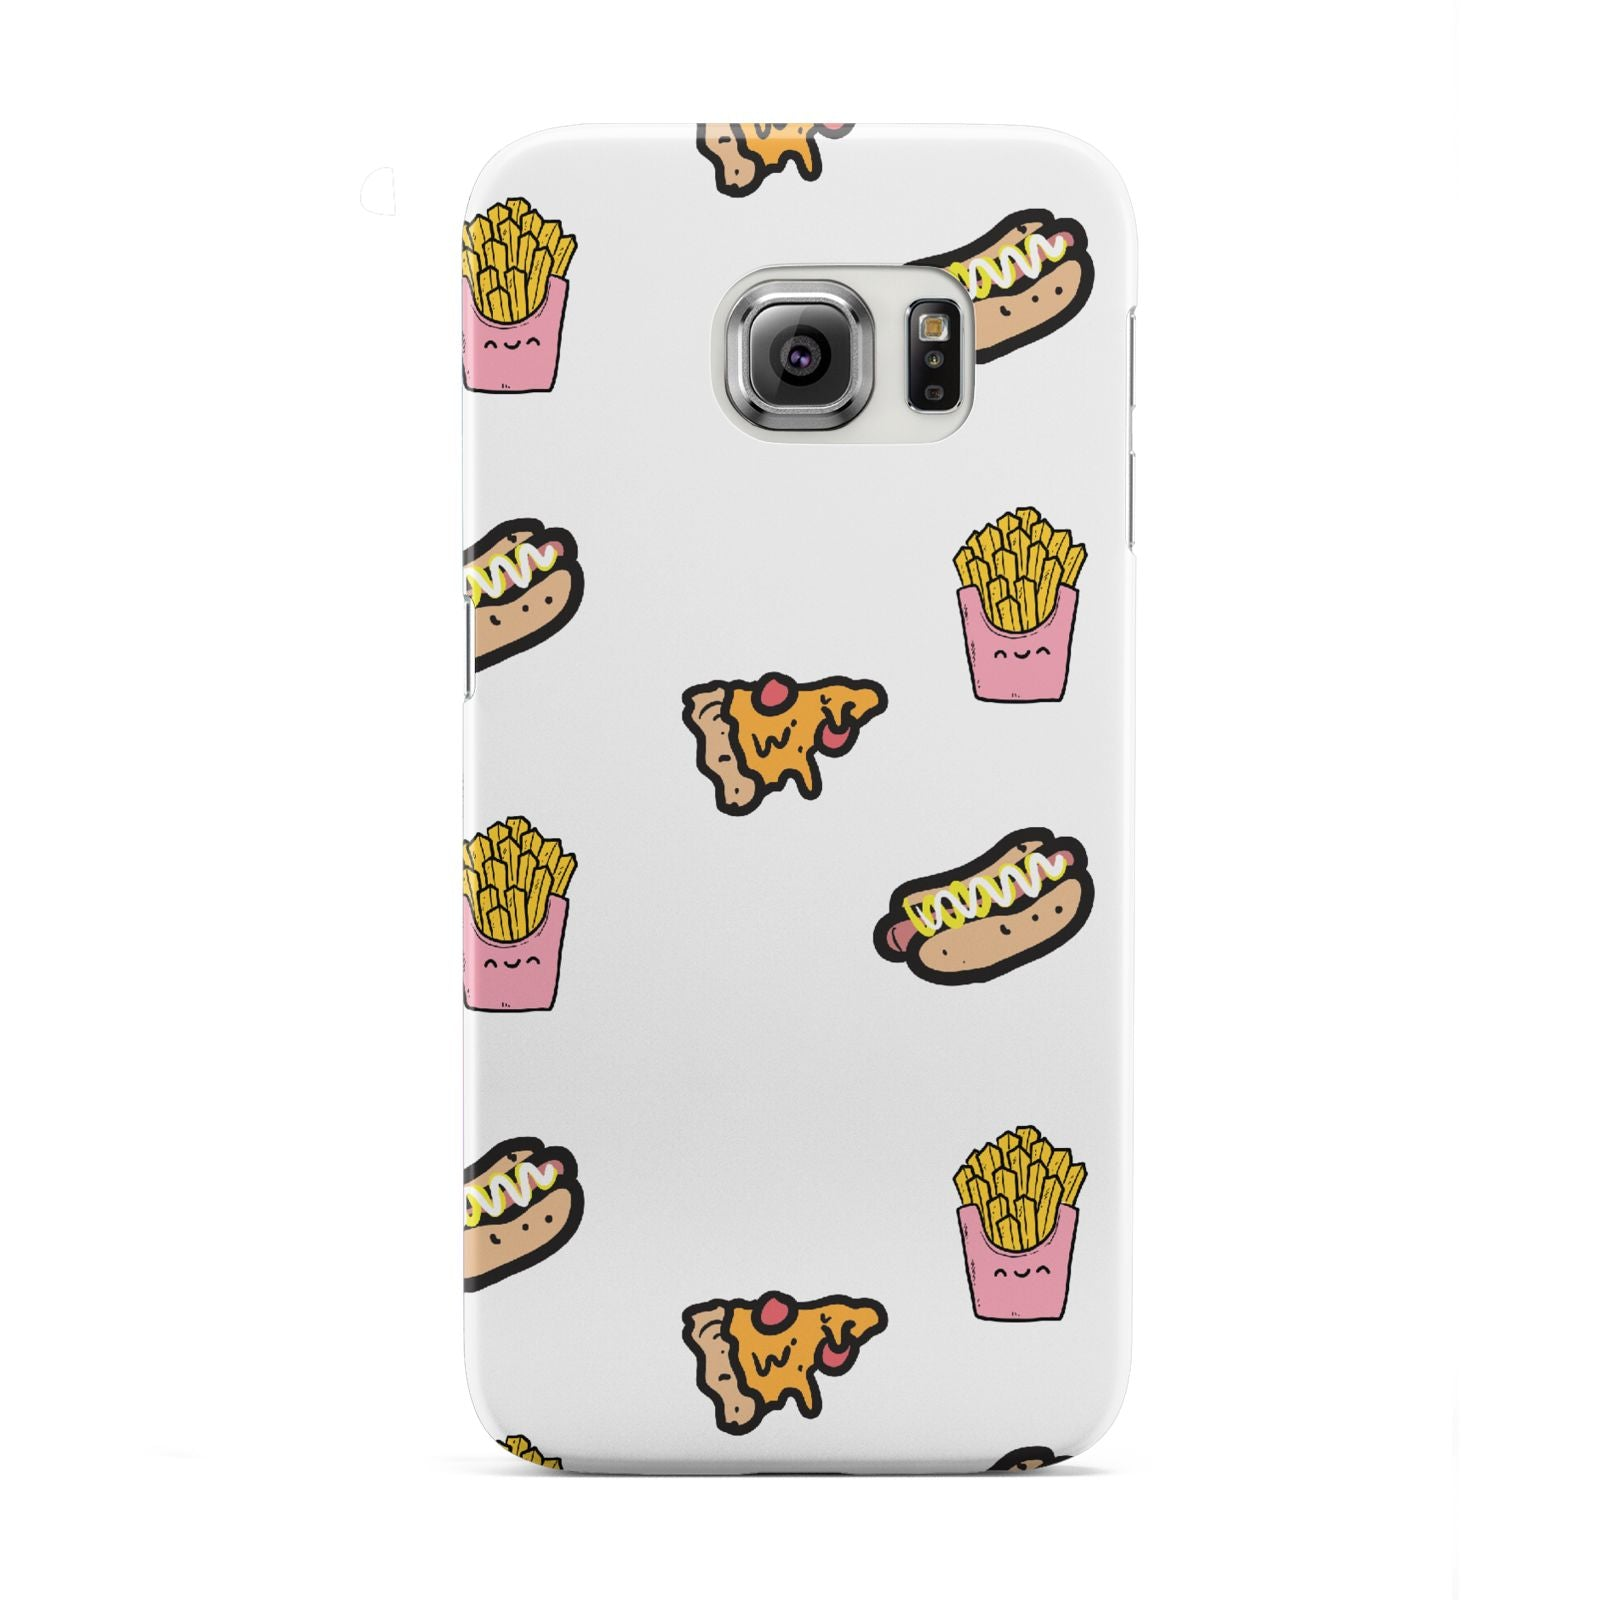 Fries Pizza Hot Dog Samsung Galaxy S6 Edge Case